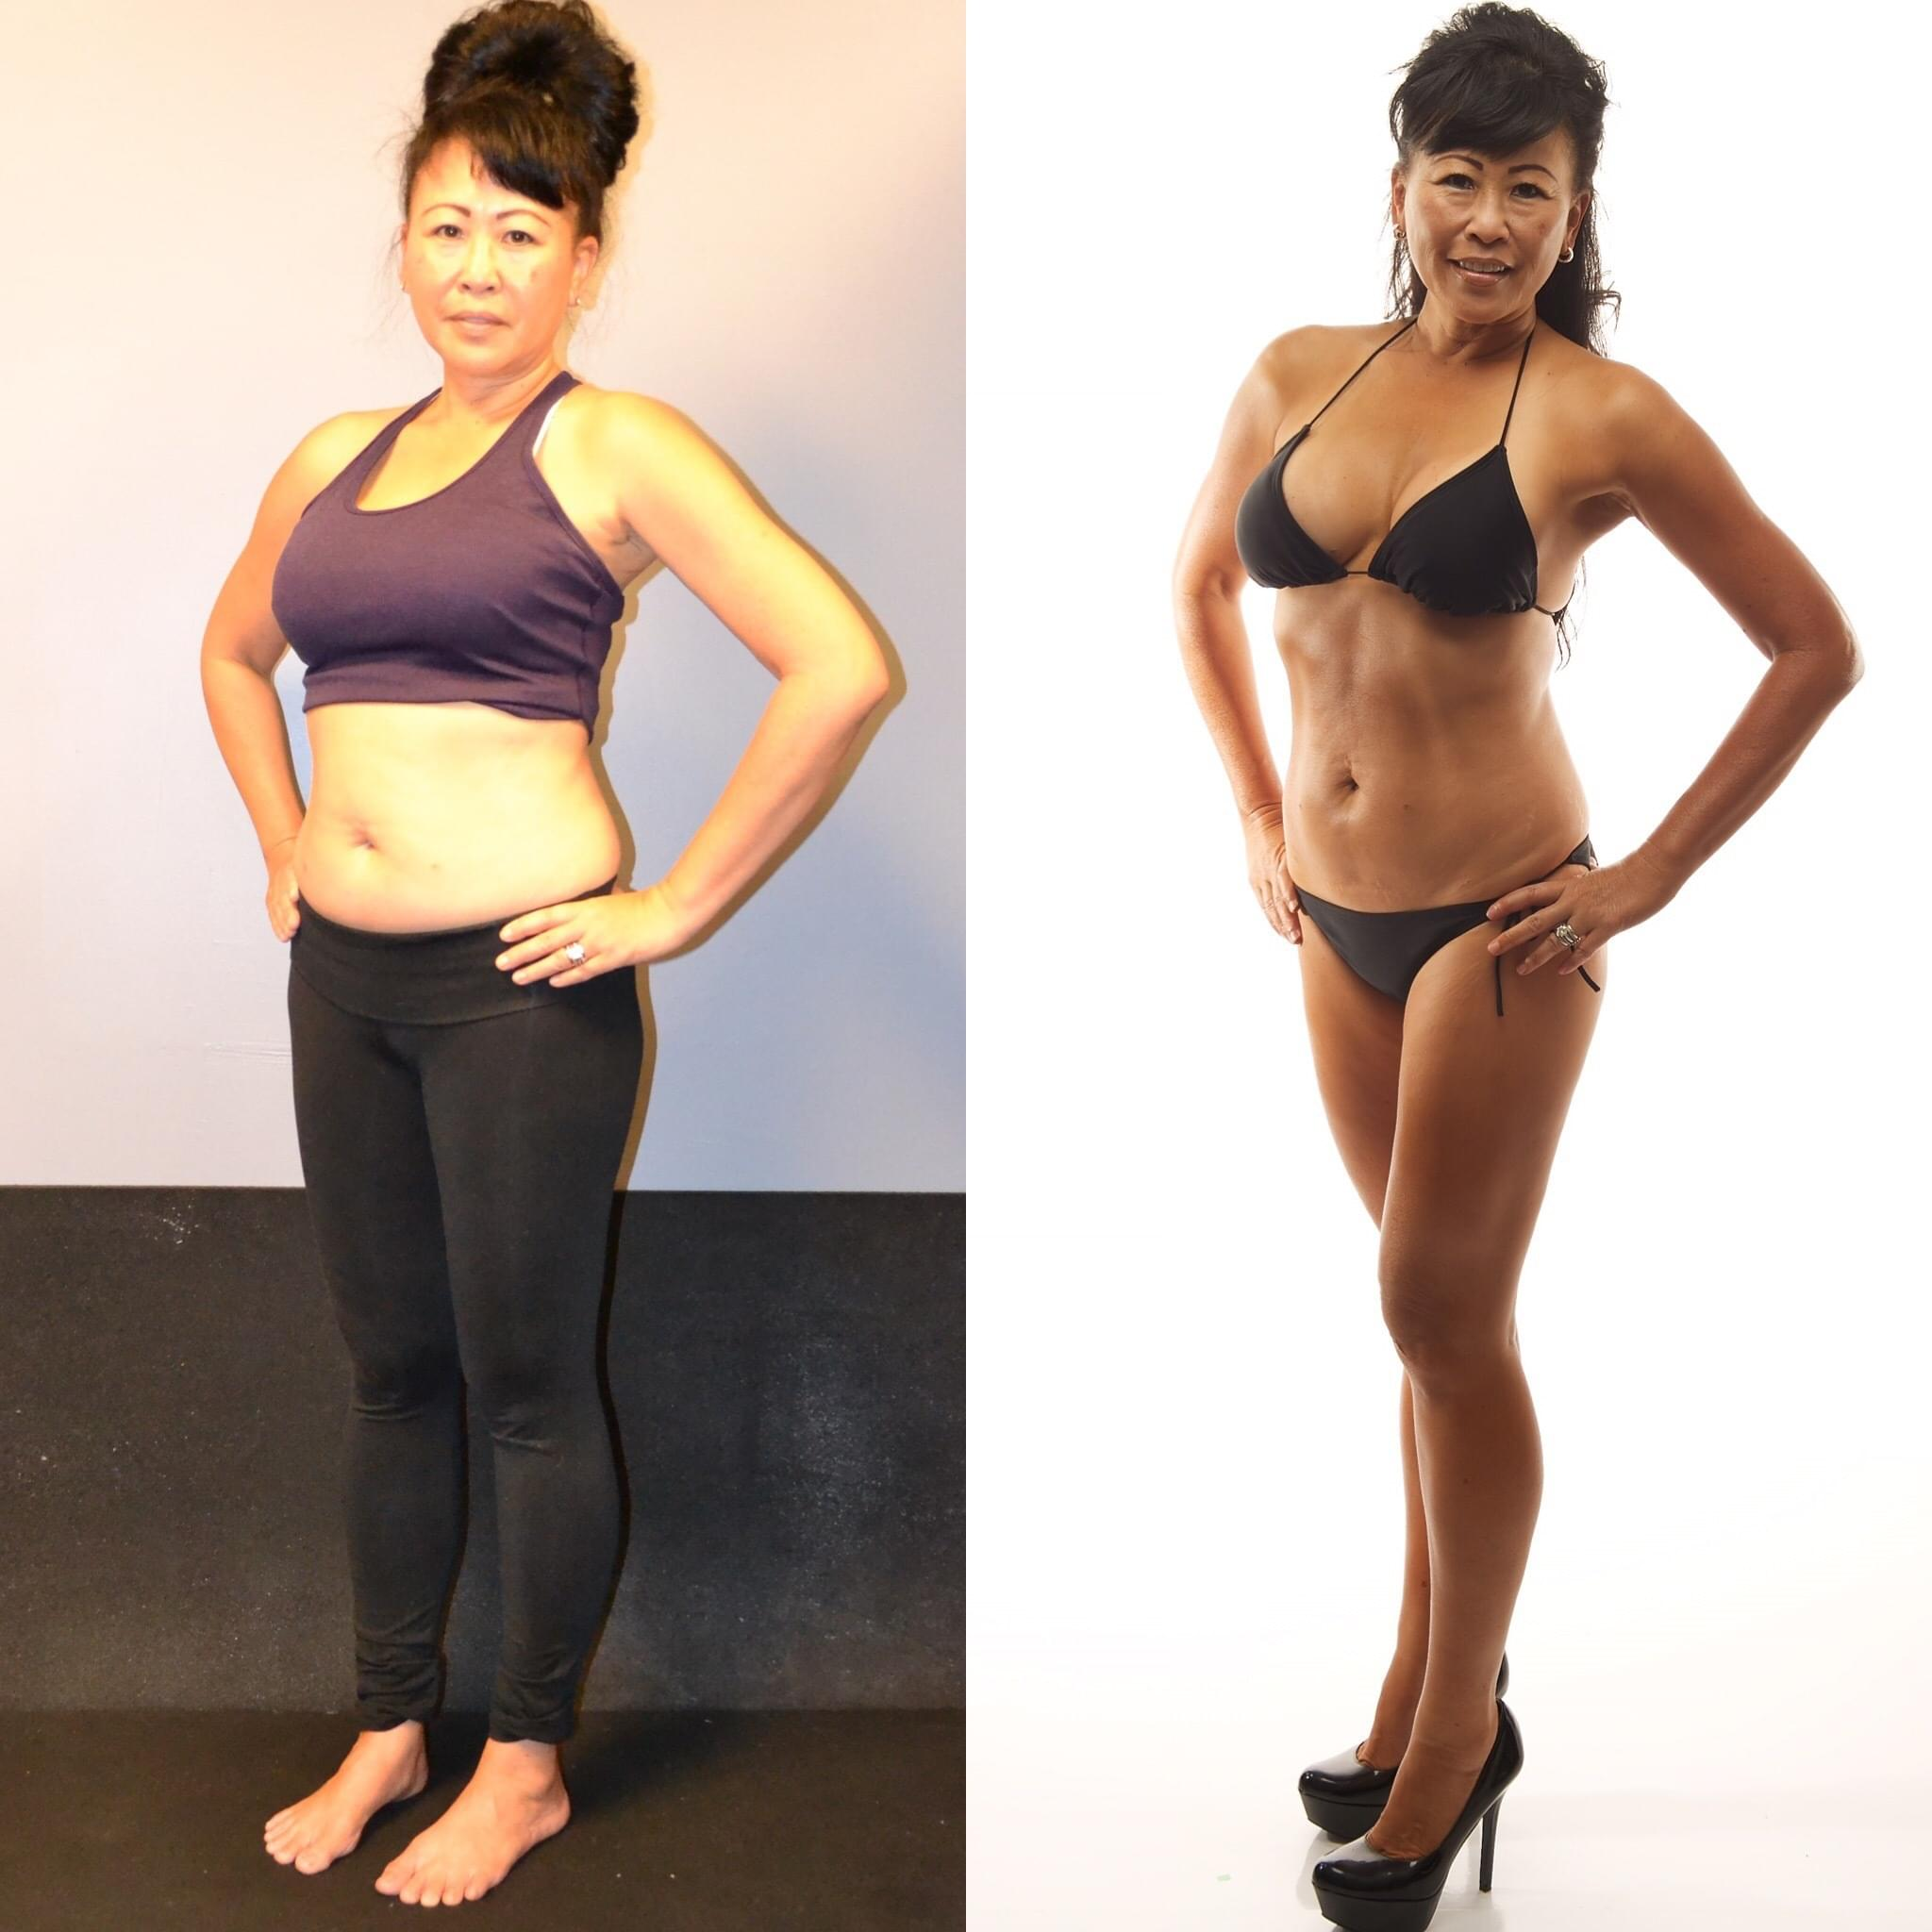 Think you're WAY too busy to get lean and get fit? Read Nikki's Story... - My life was unbalanced: too much work, high anxiety, high cholesterol, metabolism and hormones changing. I had to do something about it, but was intimidated when I first walked into CrossFit to accept the TRANSFORM Challenge. Encouragement and guidance from Keoni the coaching staff made the difference. I'll do this for life, one step at a time.-Nikki Brissette